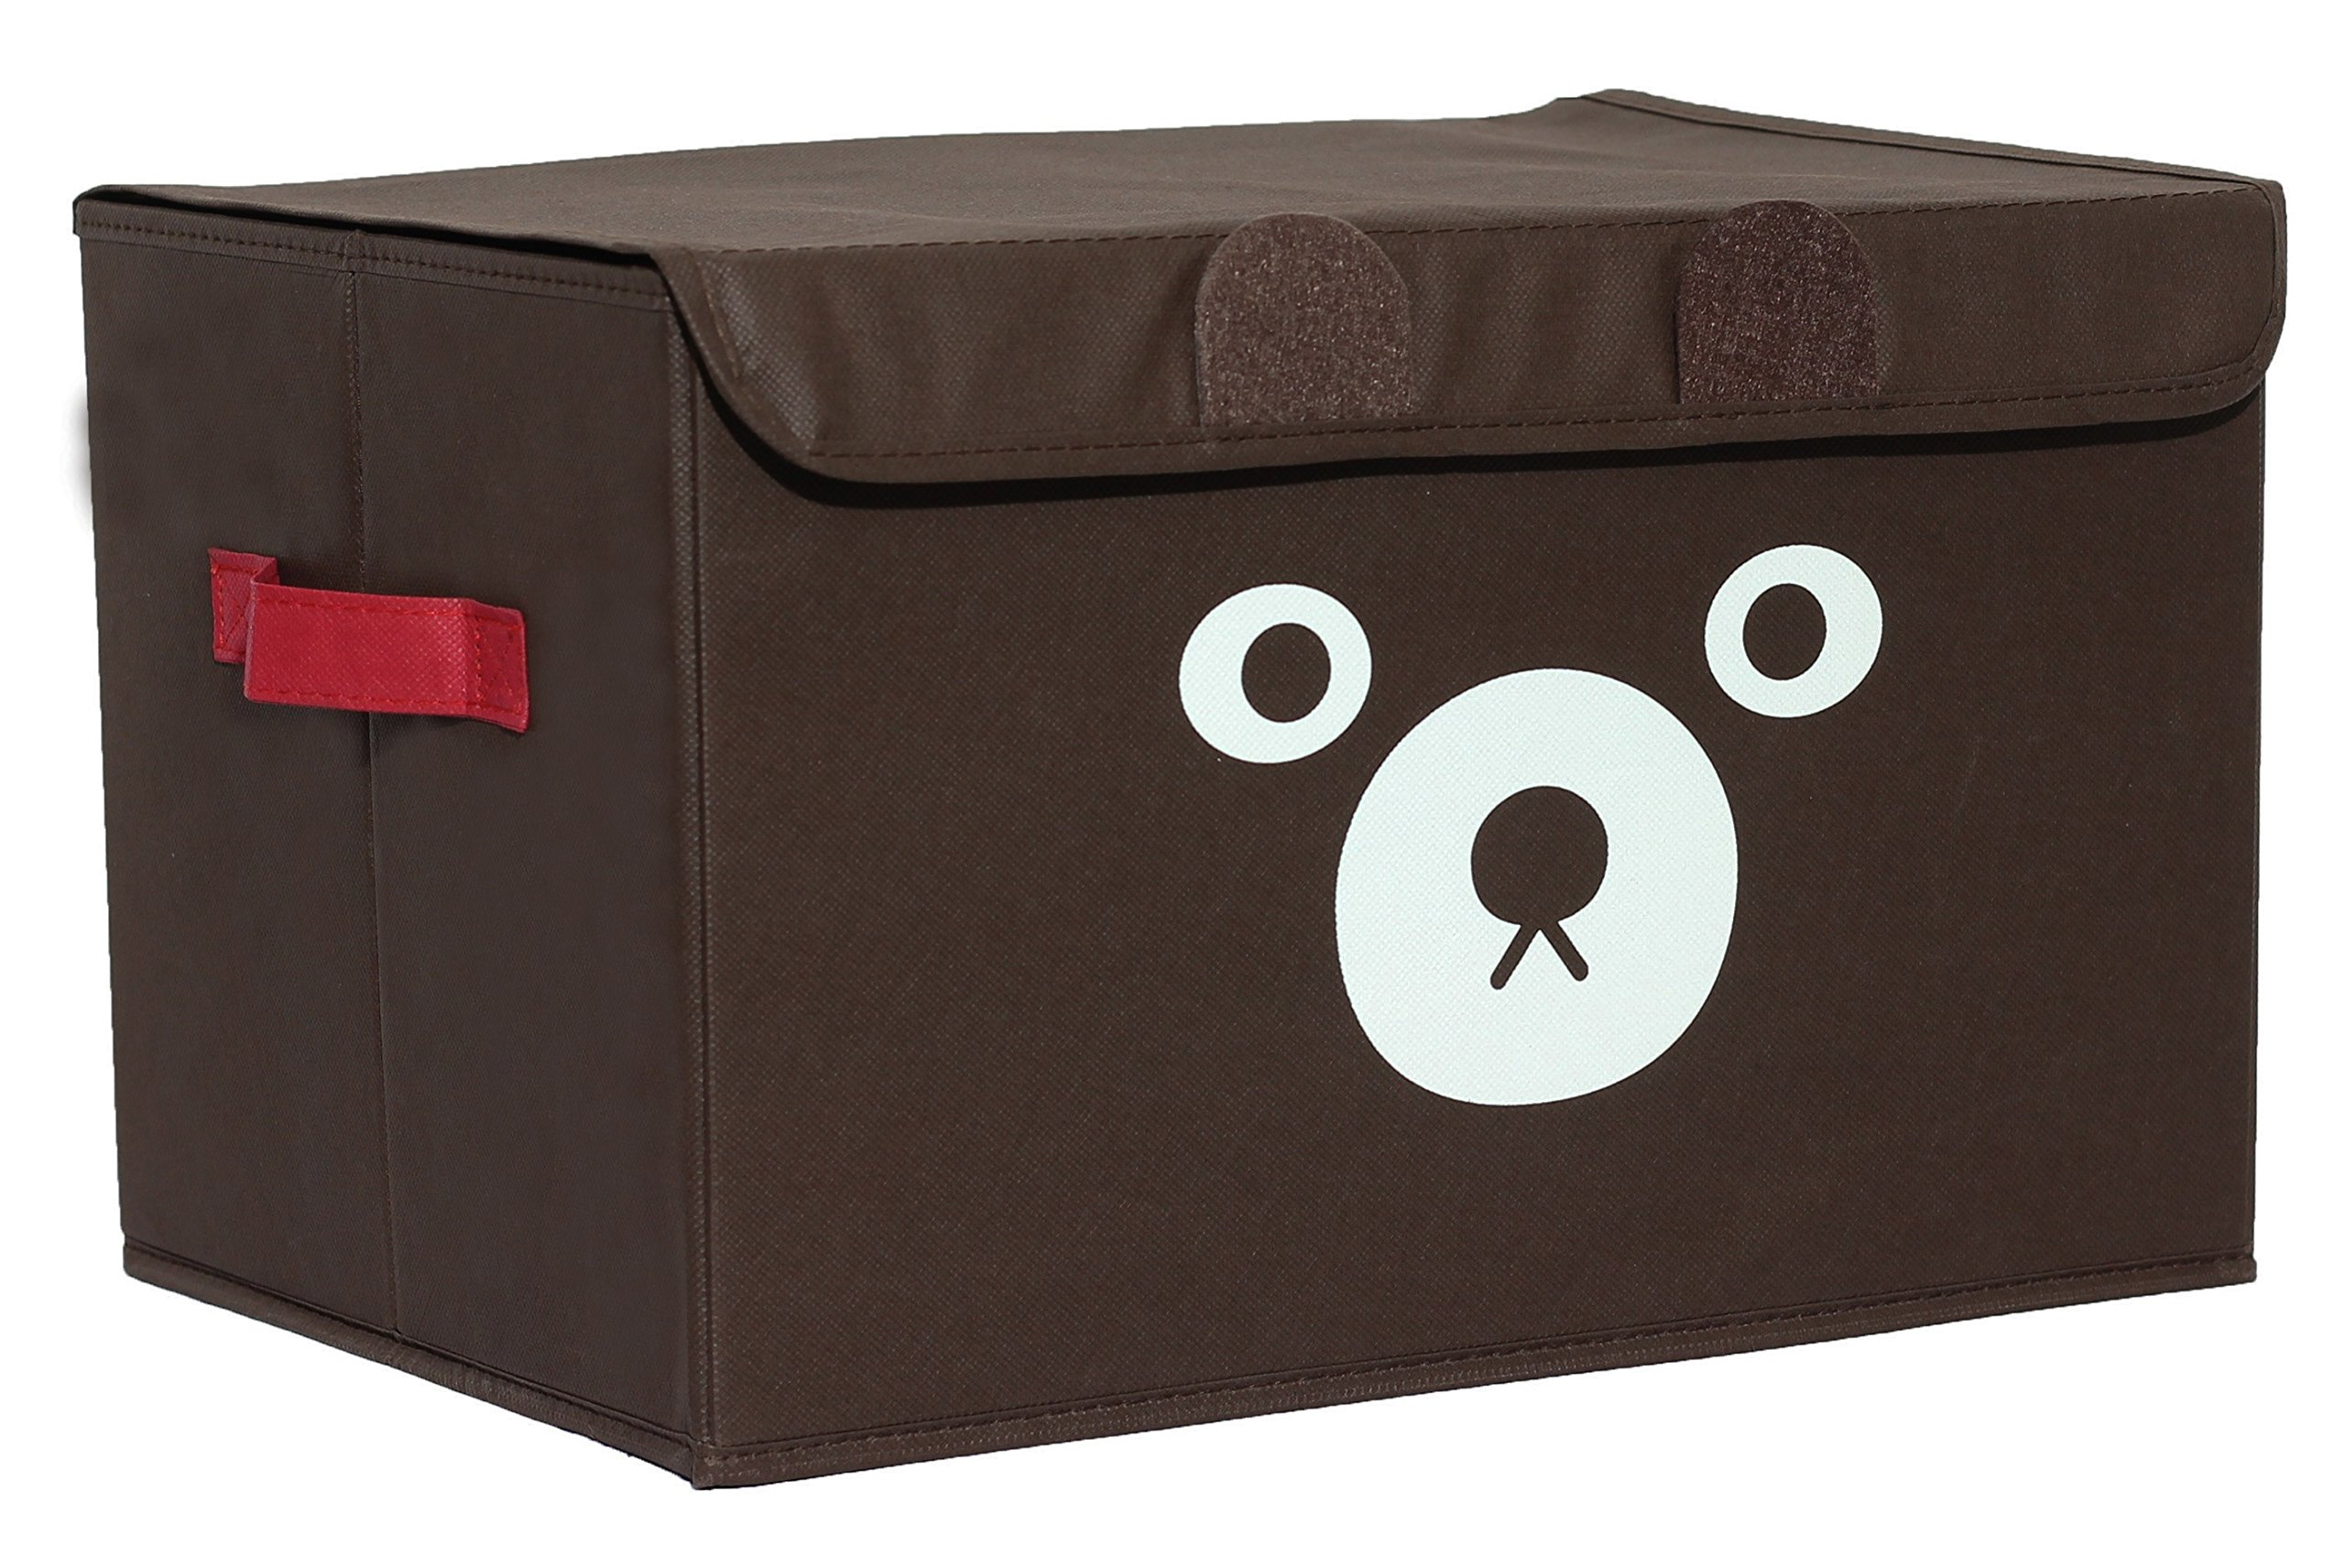 Katabird Storage Bin for Toy Storage, Collapsible Chest Box, Toys Organizer with Flip Lid for Kids Playroom, Baby Clothing, Children Books, Stuffed Animal and Gift Baskets,Unisex Toy Boxes for Nursery by Katabird